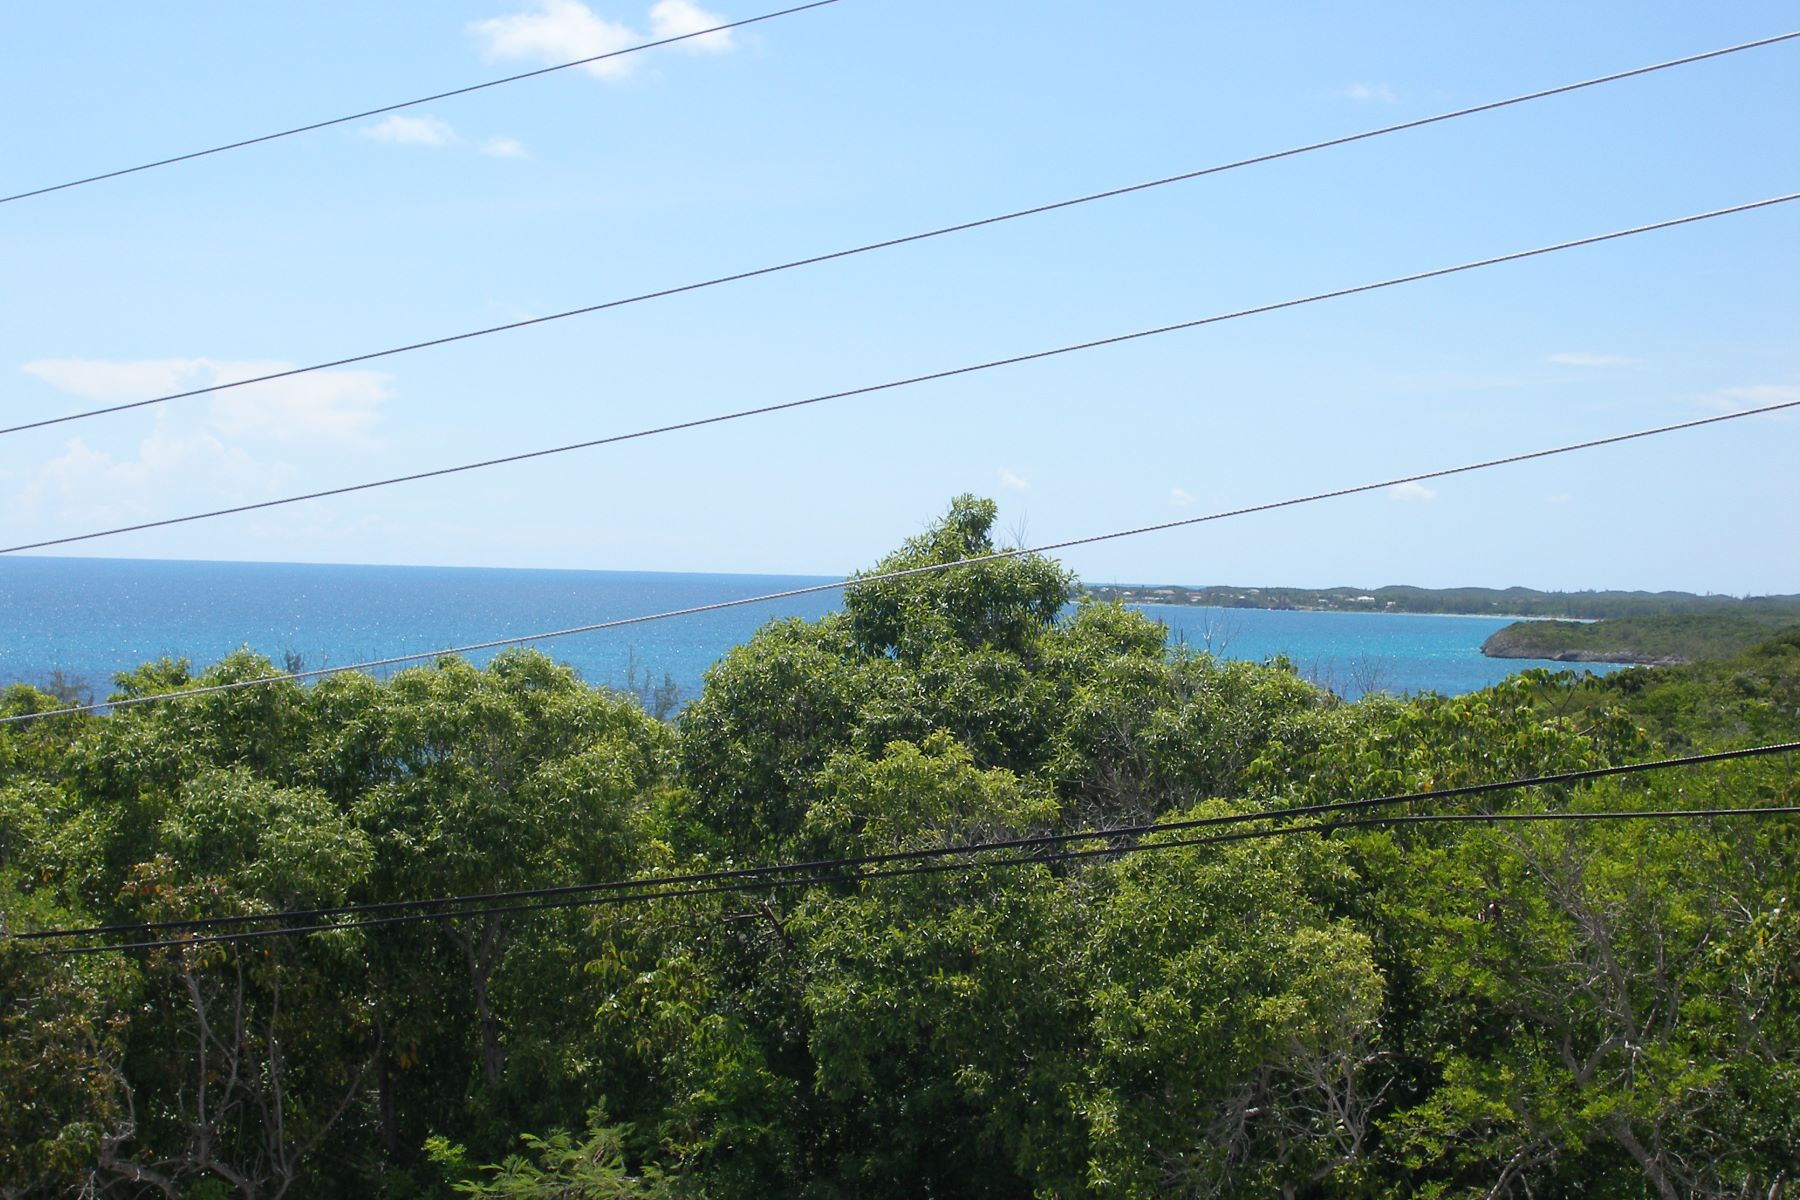 Land for Sale at Lot 6 & 7 Block 1 Section A Eleuthera, Eleuthera Bahamas